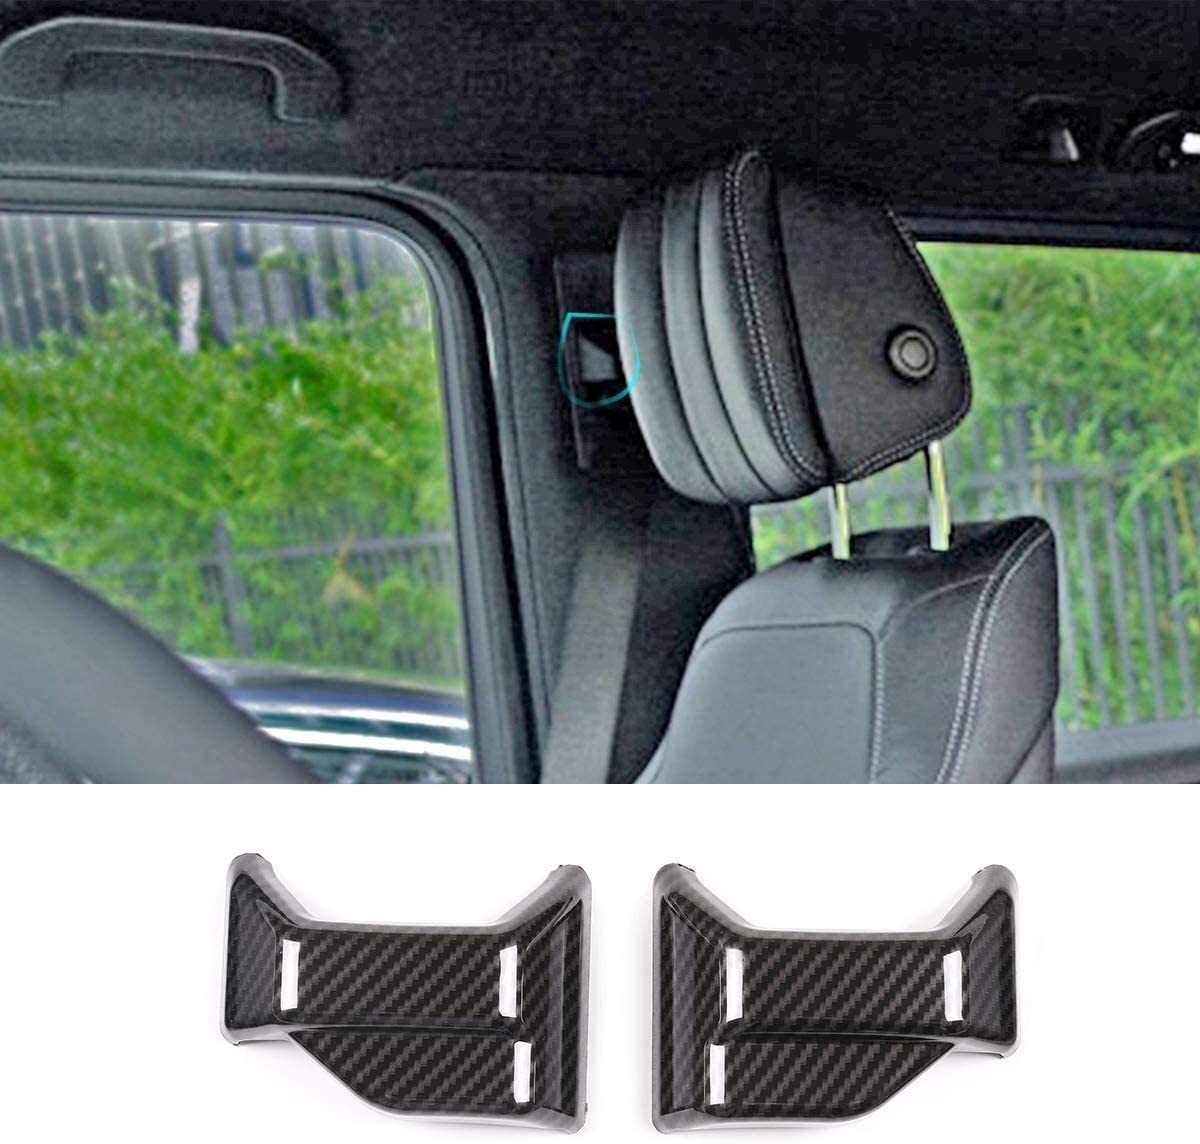 Onlogo Apply Super beauty Outlet ☆ Free Shipping product restock quality top to Interior ABS Chrome Safety Seat Trim Belt Cover